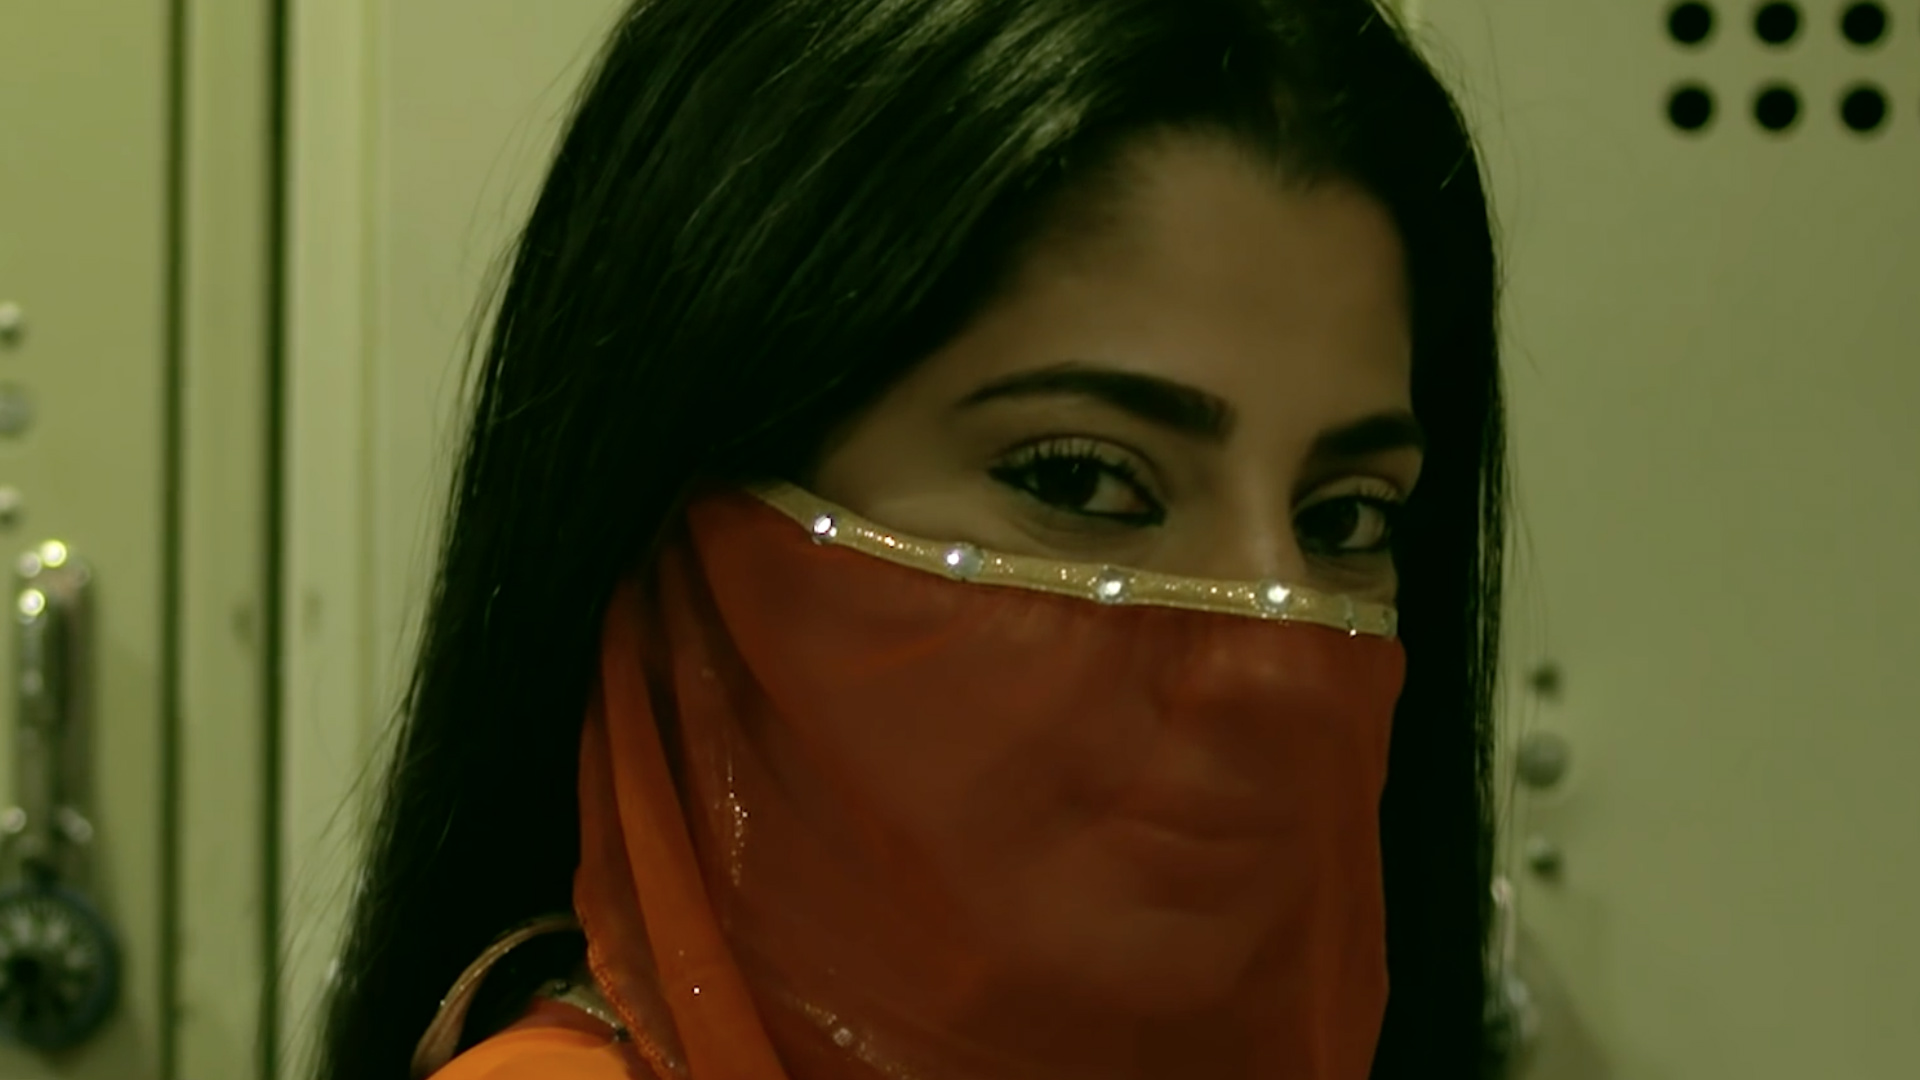 Pornfidelity nadia ali rough muslim punishment sex - 2 7